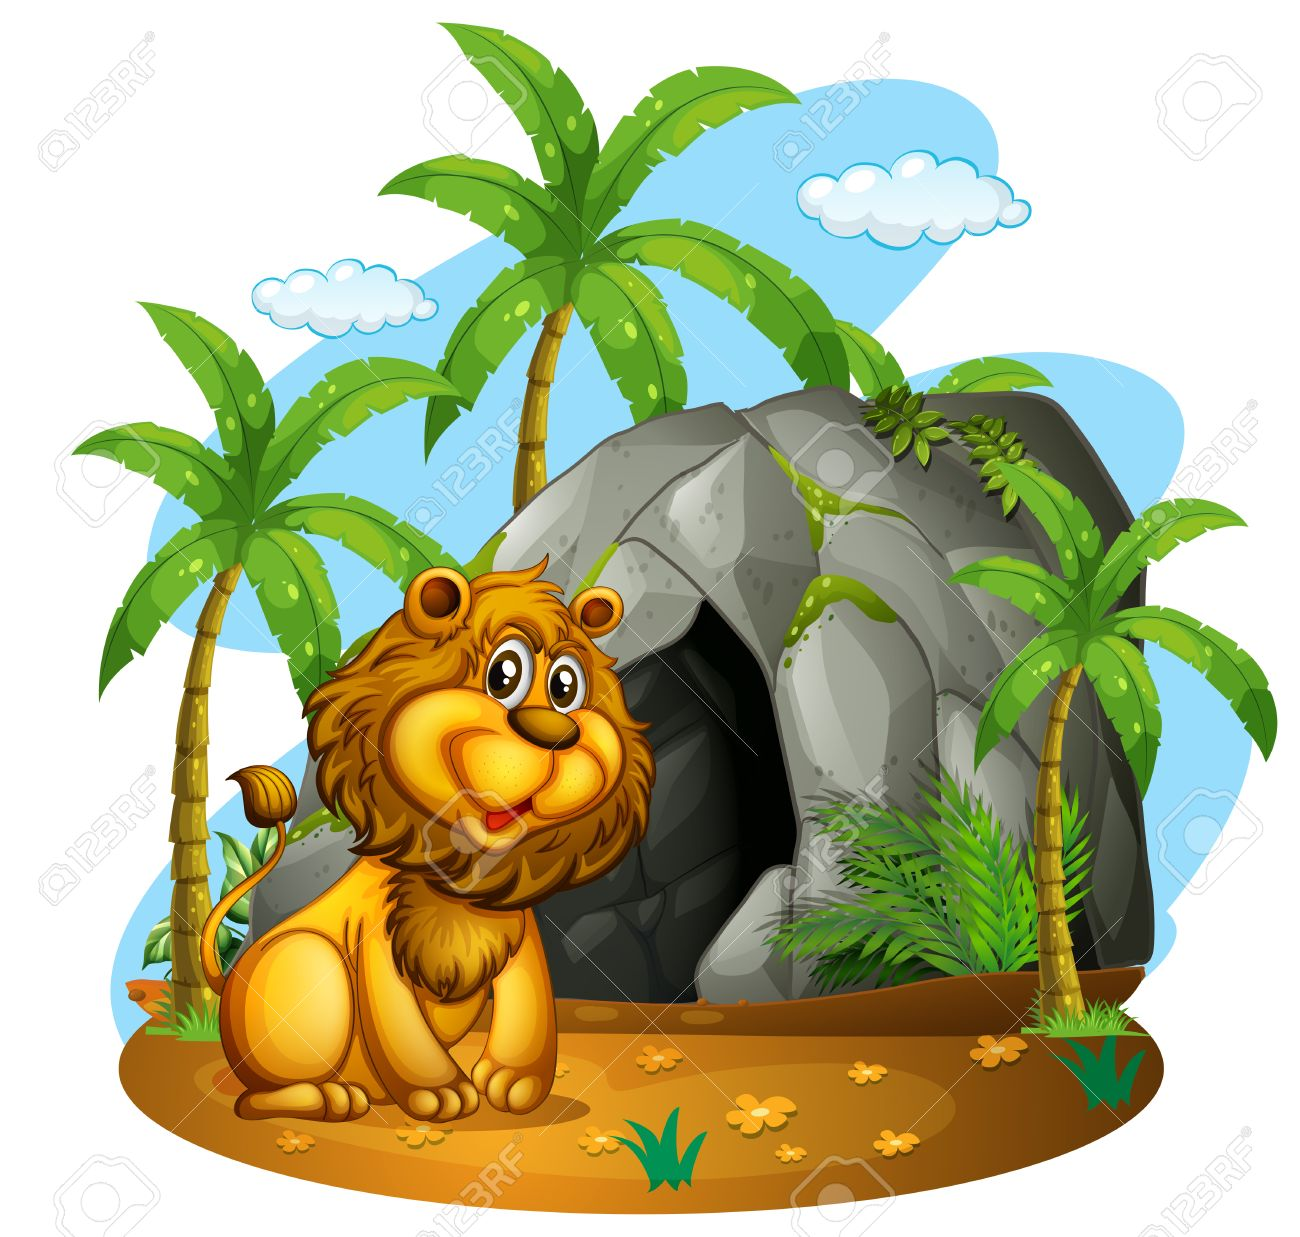 Lion In Cave Clipart.